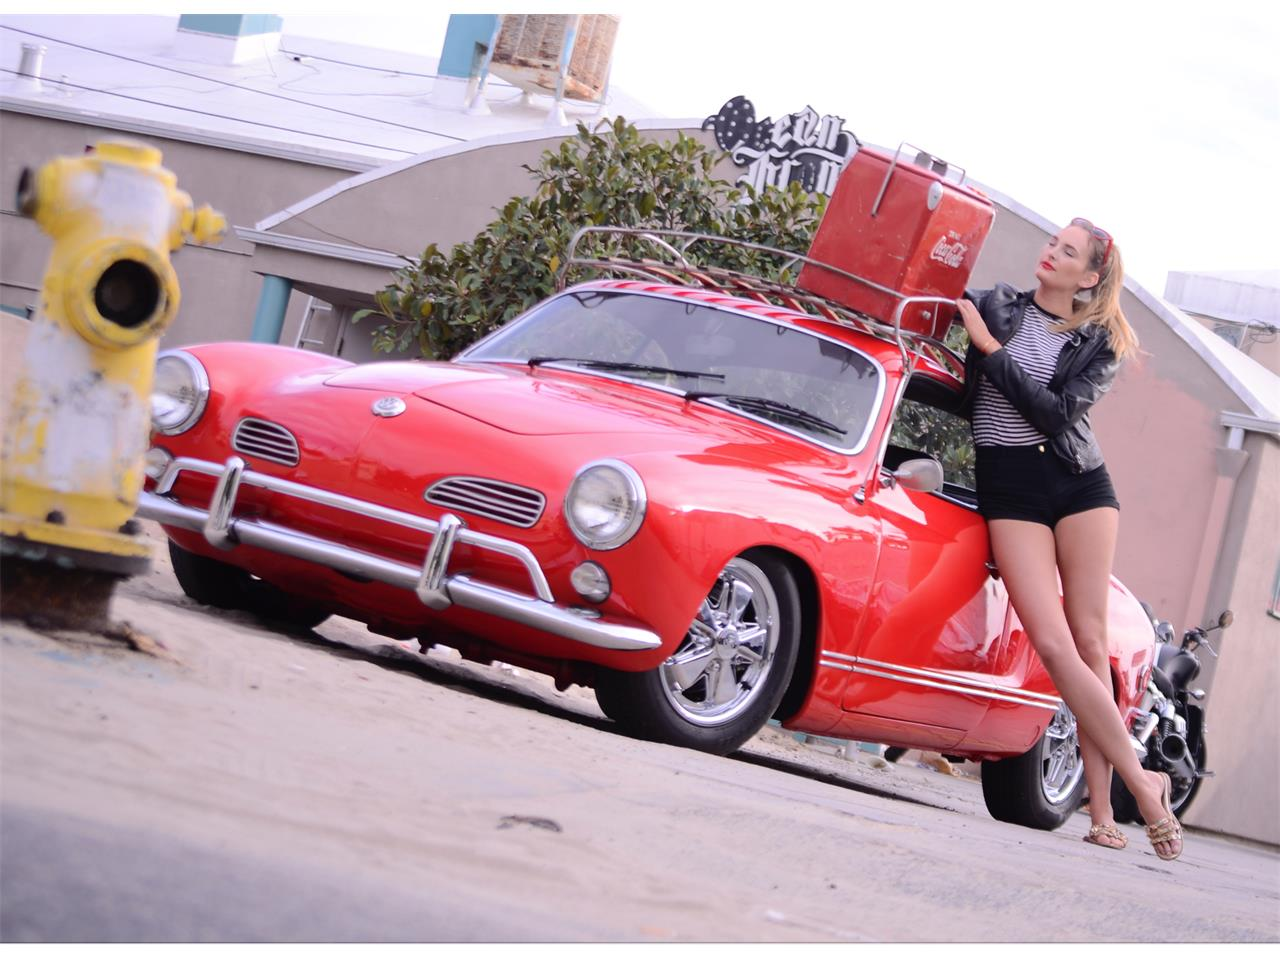 Large Picture of Classic 1969 Karmann Ghia located in California - $19,999.00 Offered by a Private Seller - NDA6